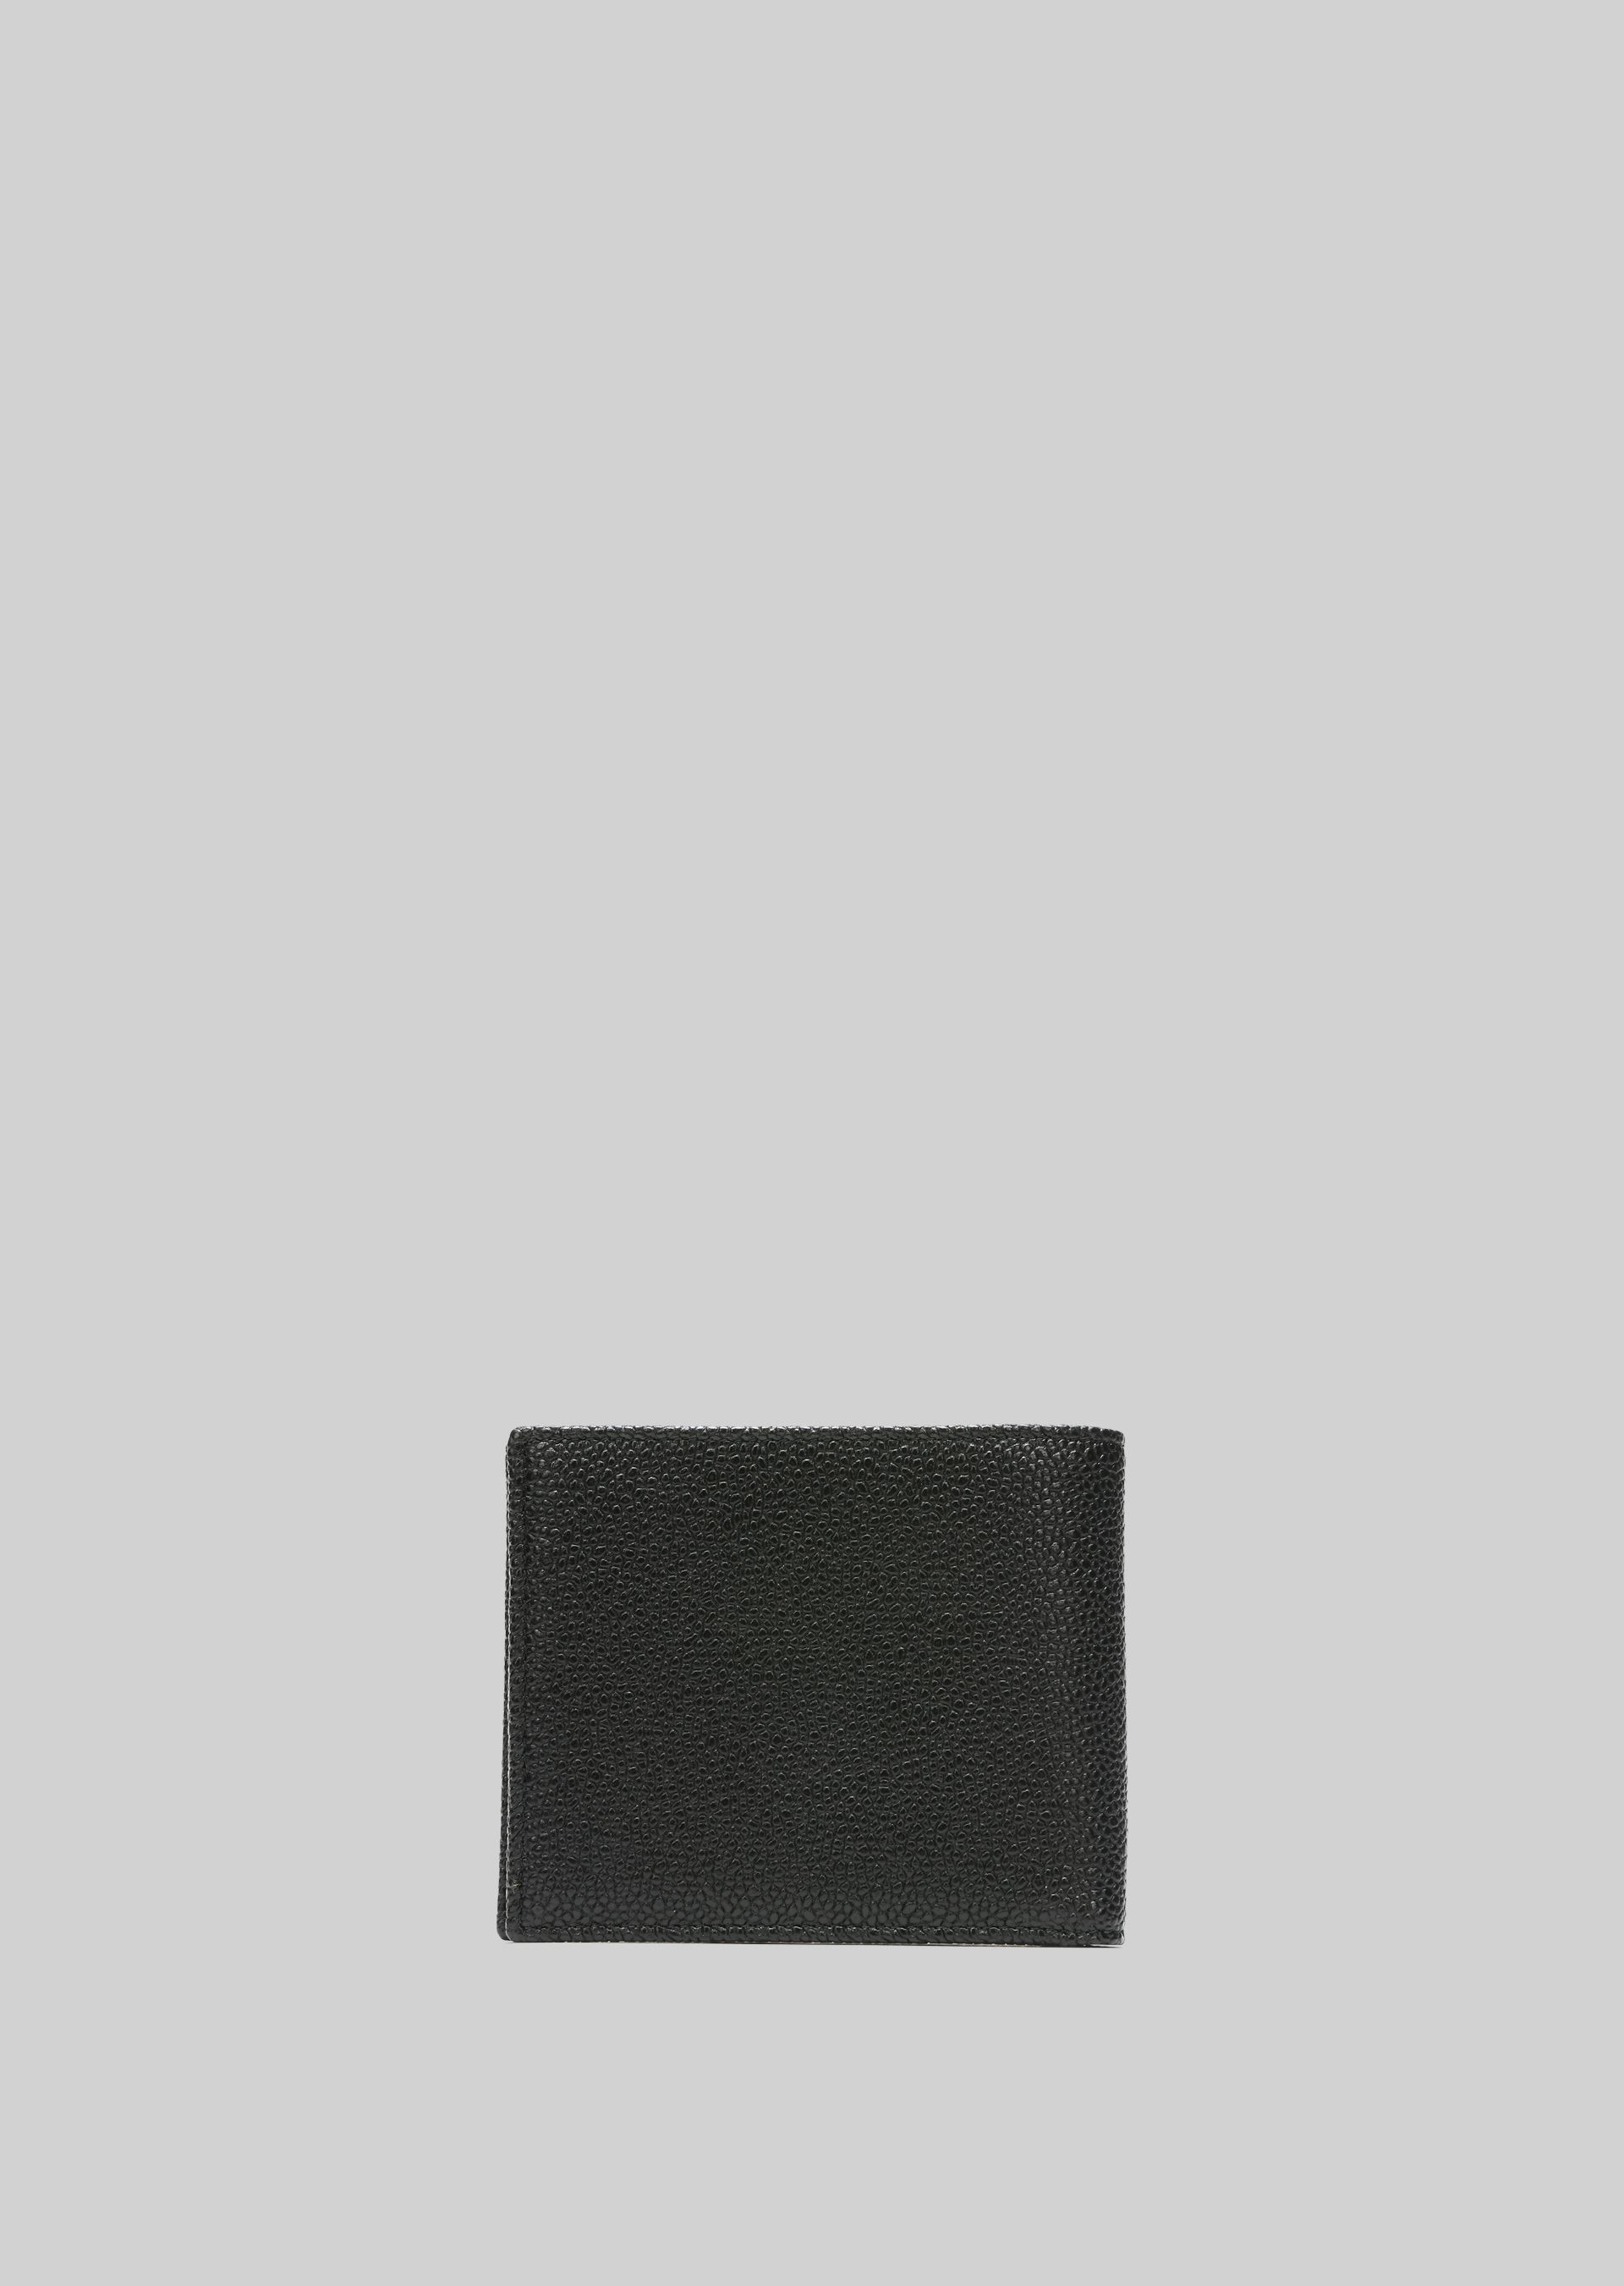 GIORGIO ARMANI LEATHER WALLET Wallet U e